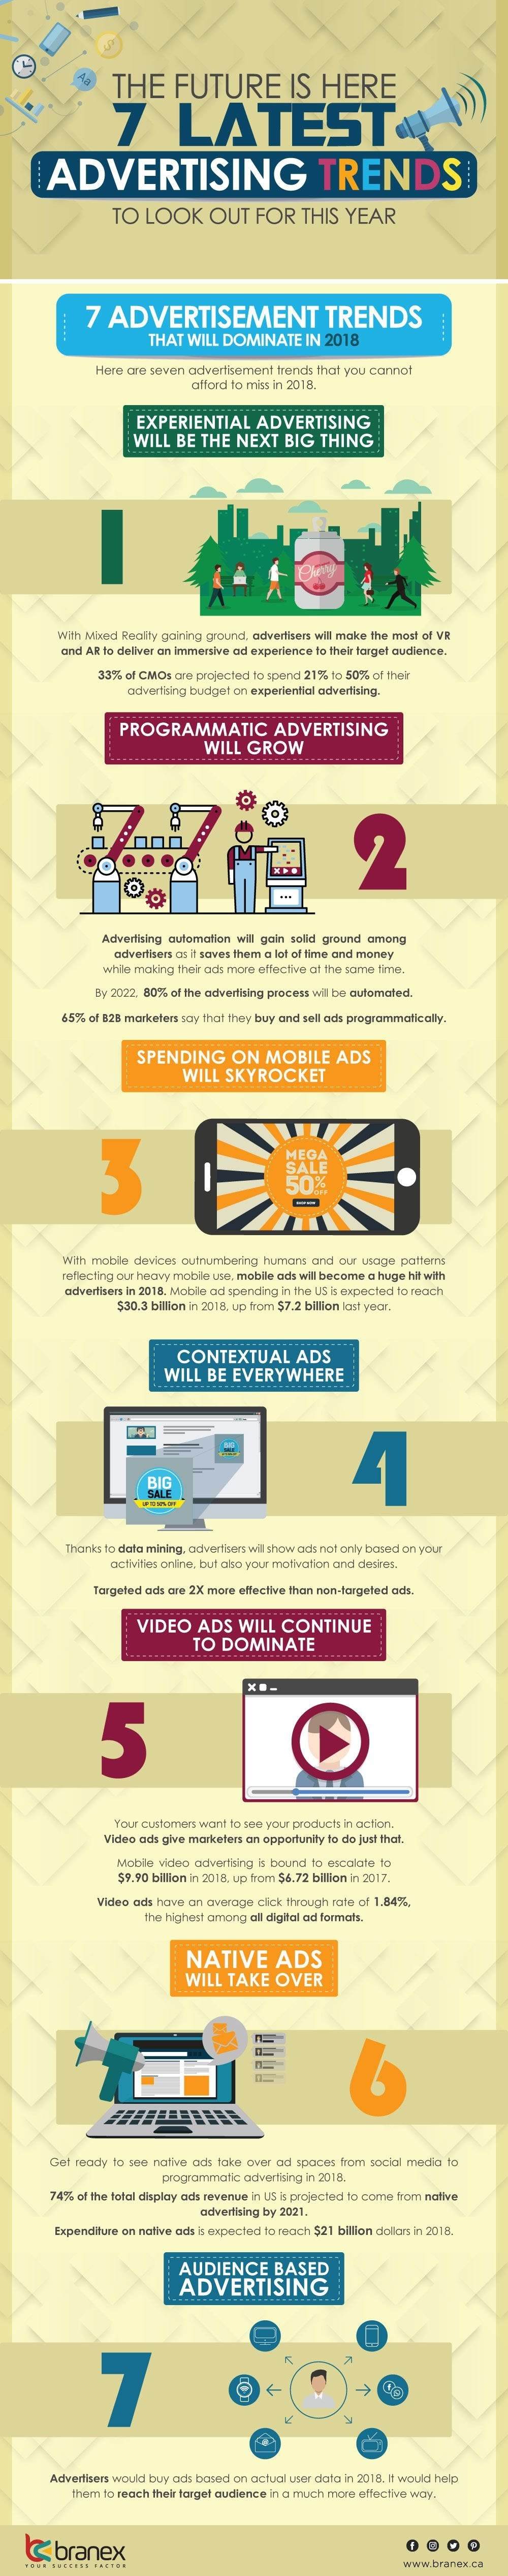 7 Advertising Trends 2018 - #Infographic